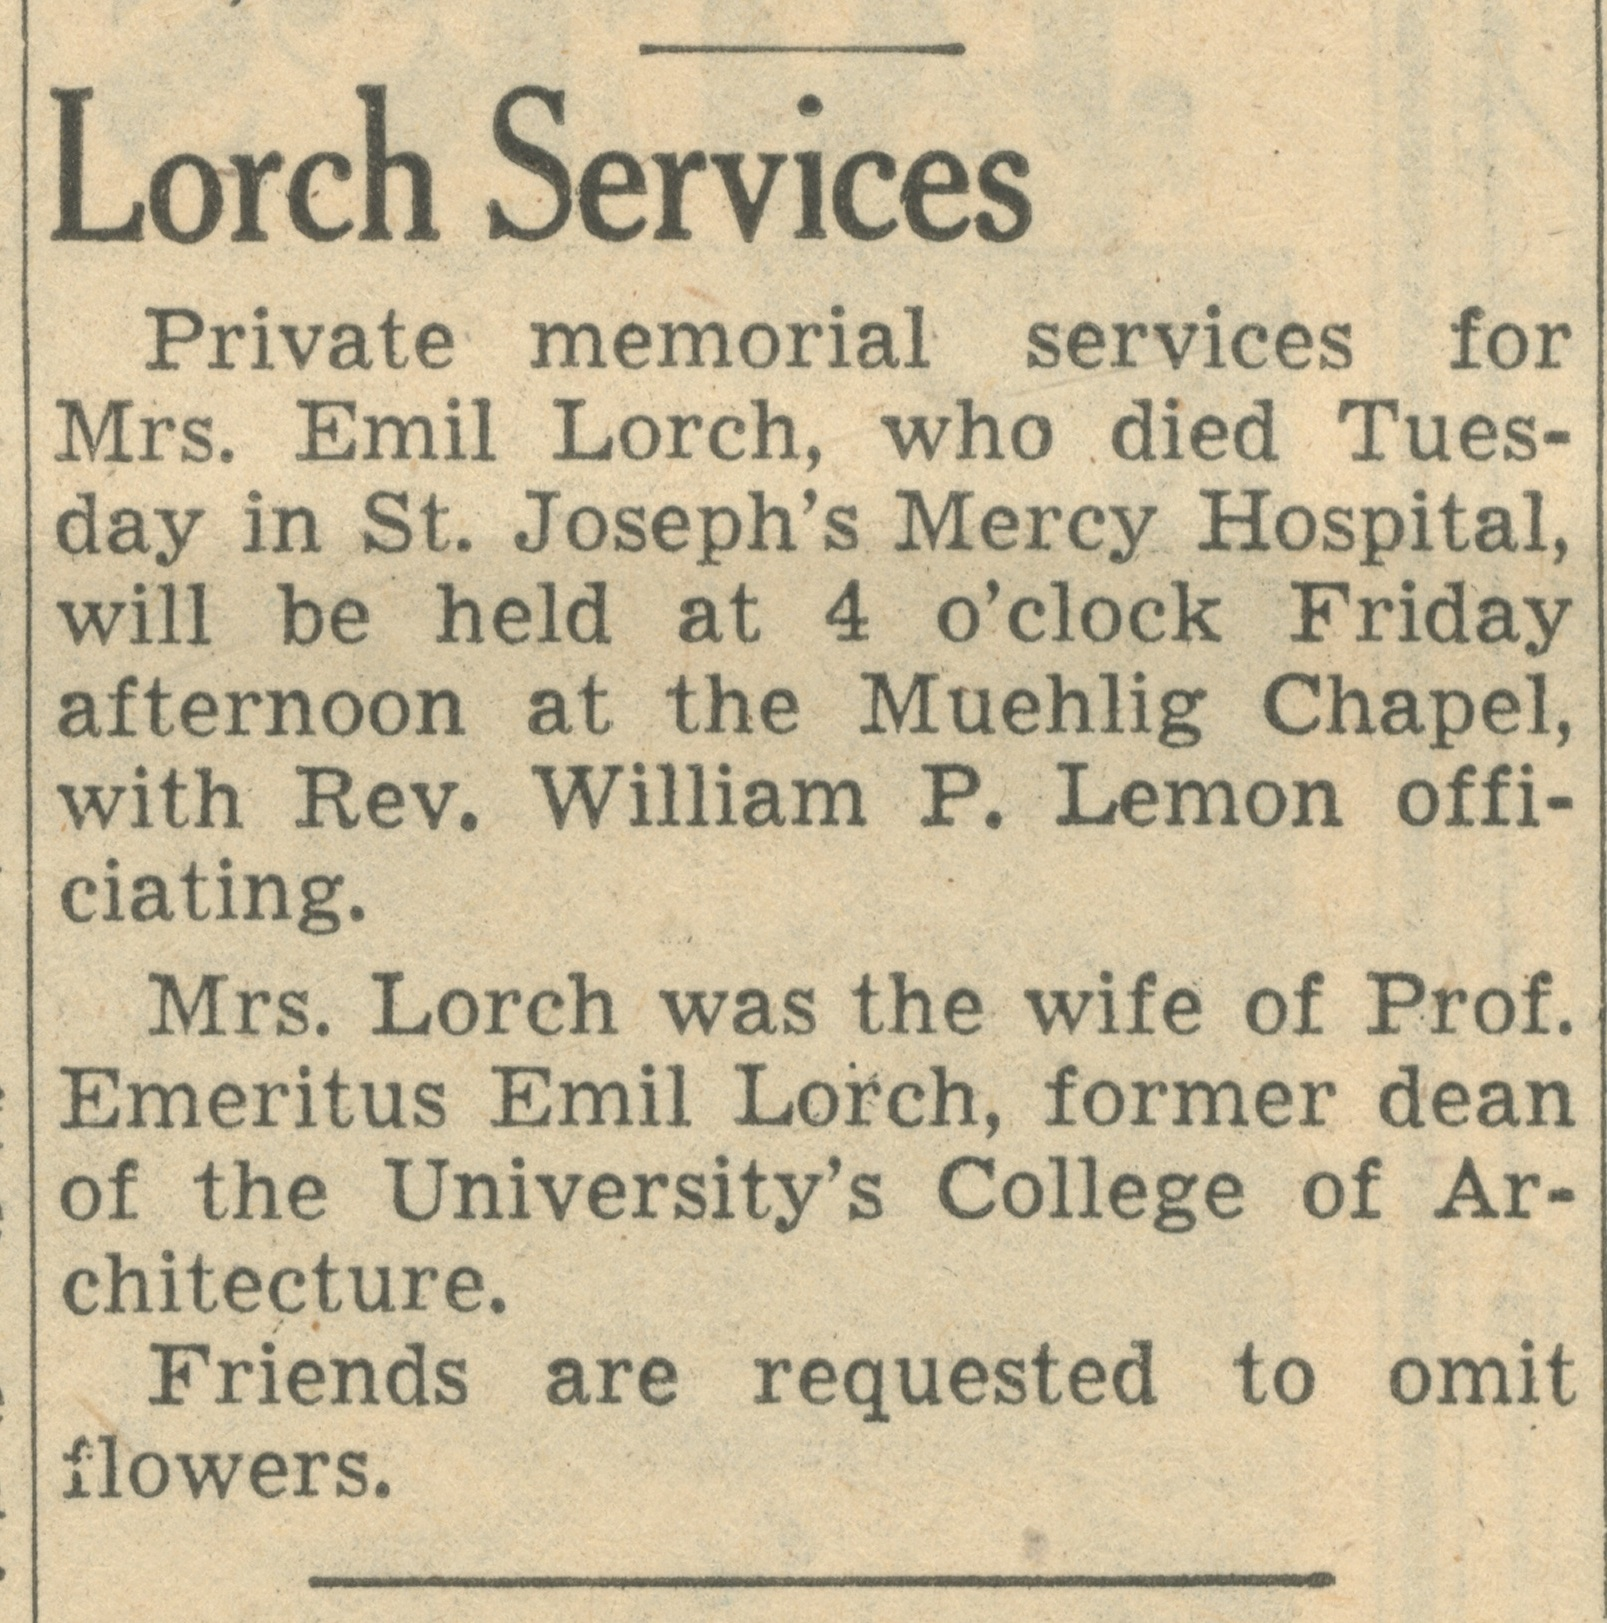 Lorch Services image